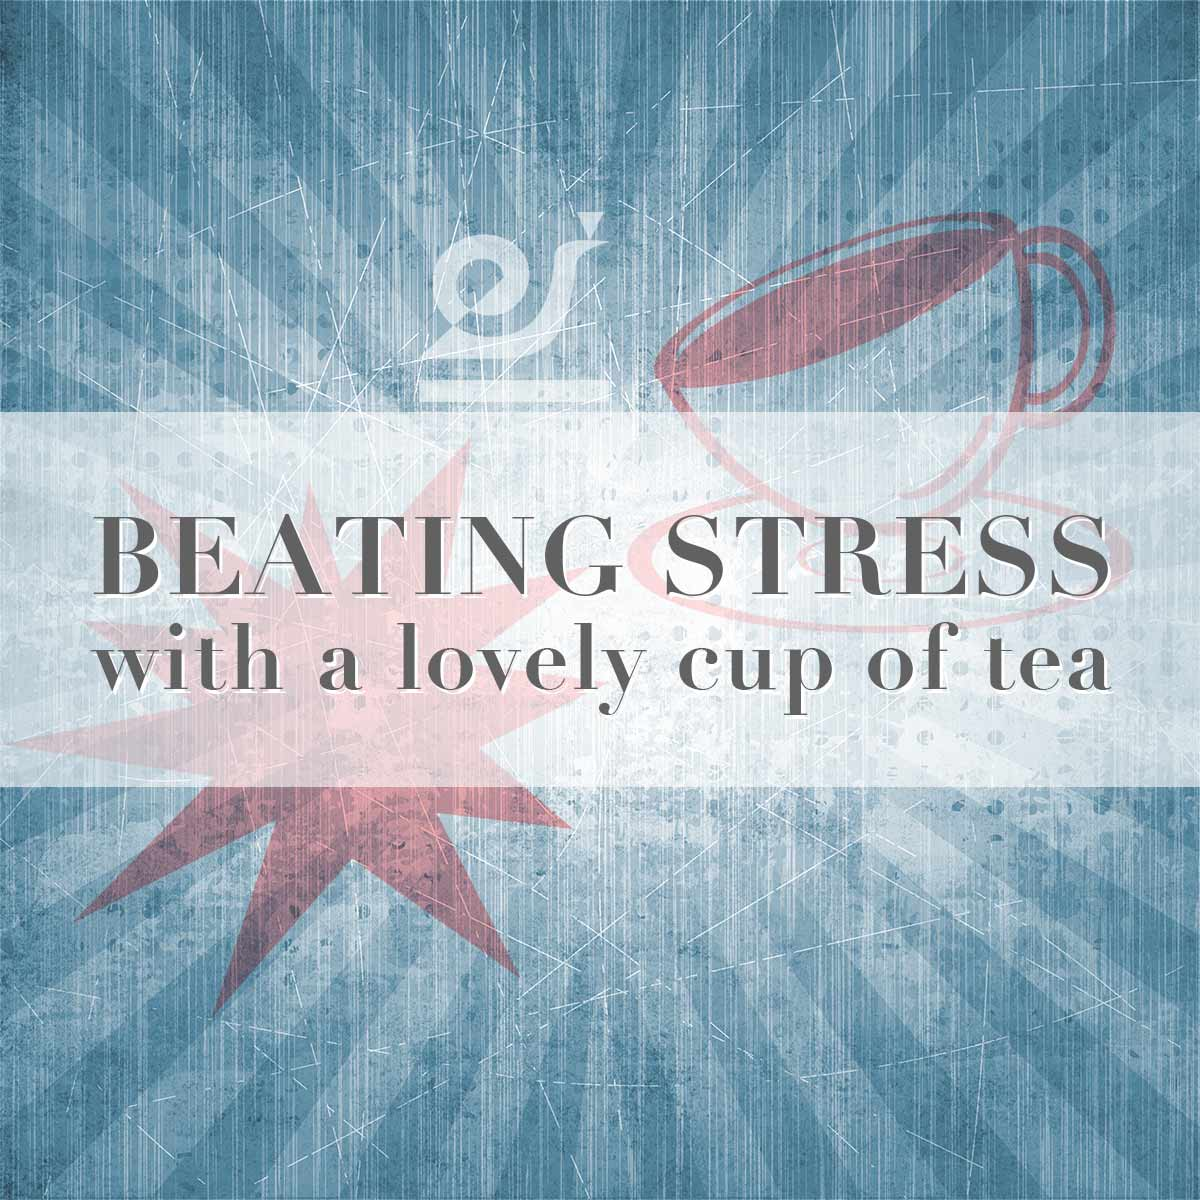 Beating stress with a lovely cup of tea